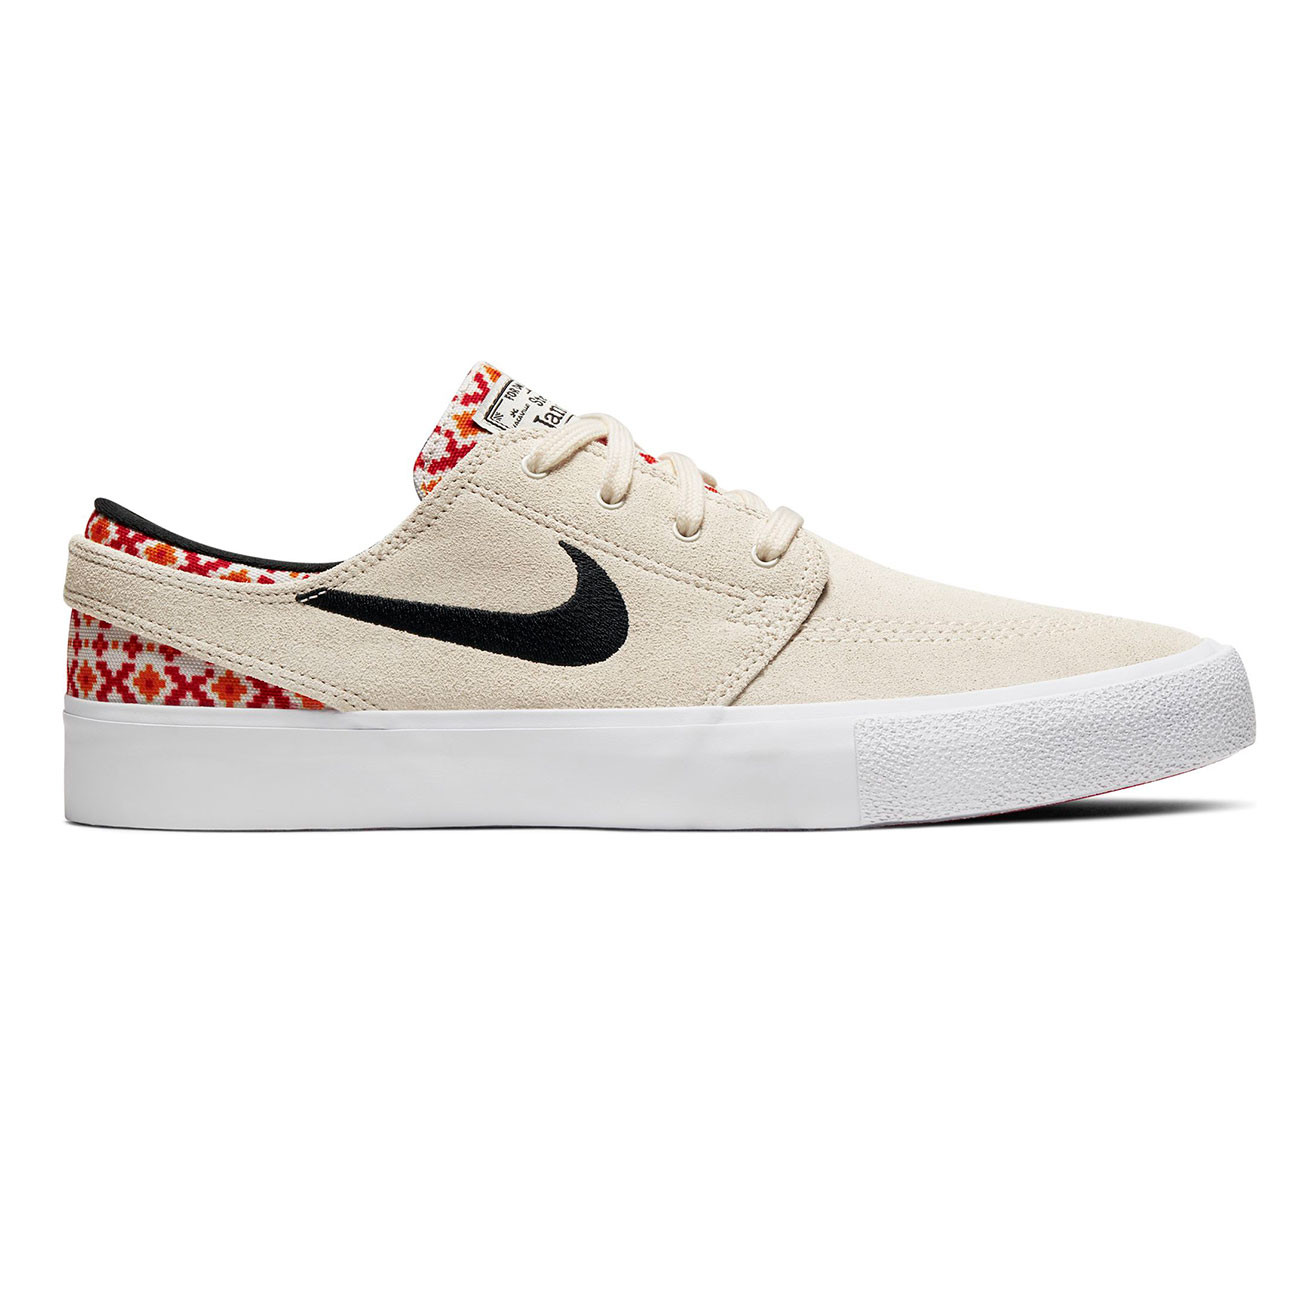 aluminio patio equipo  Sneakers Nike SB Zoom Stefan Janoski RM Premium pale ivory/black-mystic red  | Snowboard Zezula